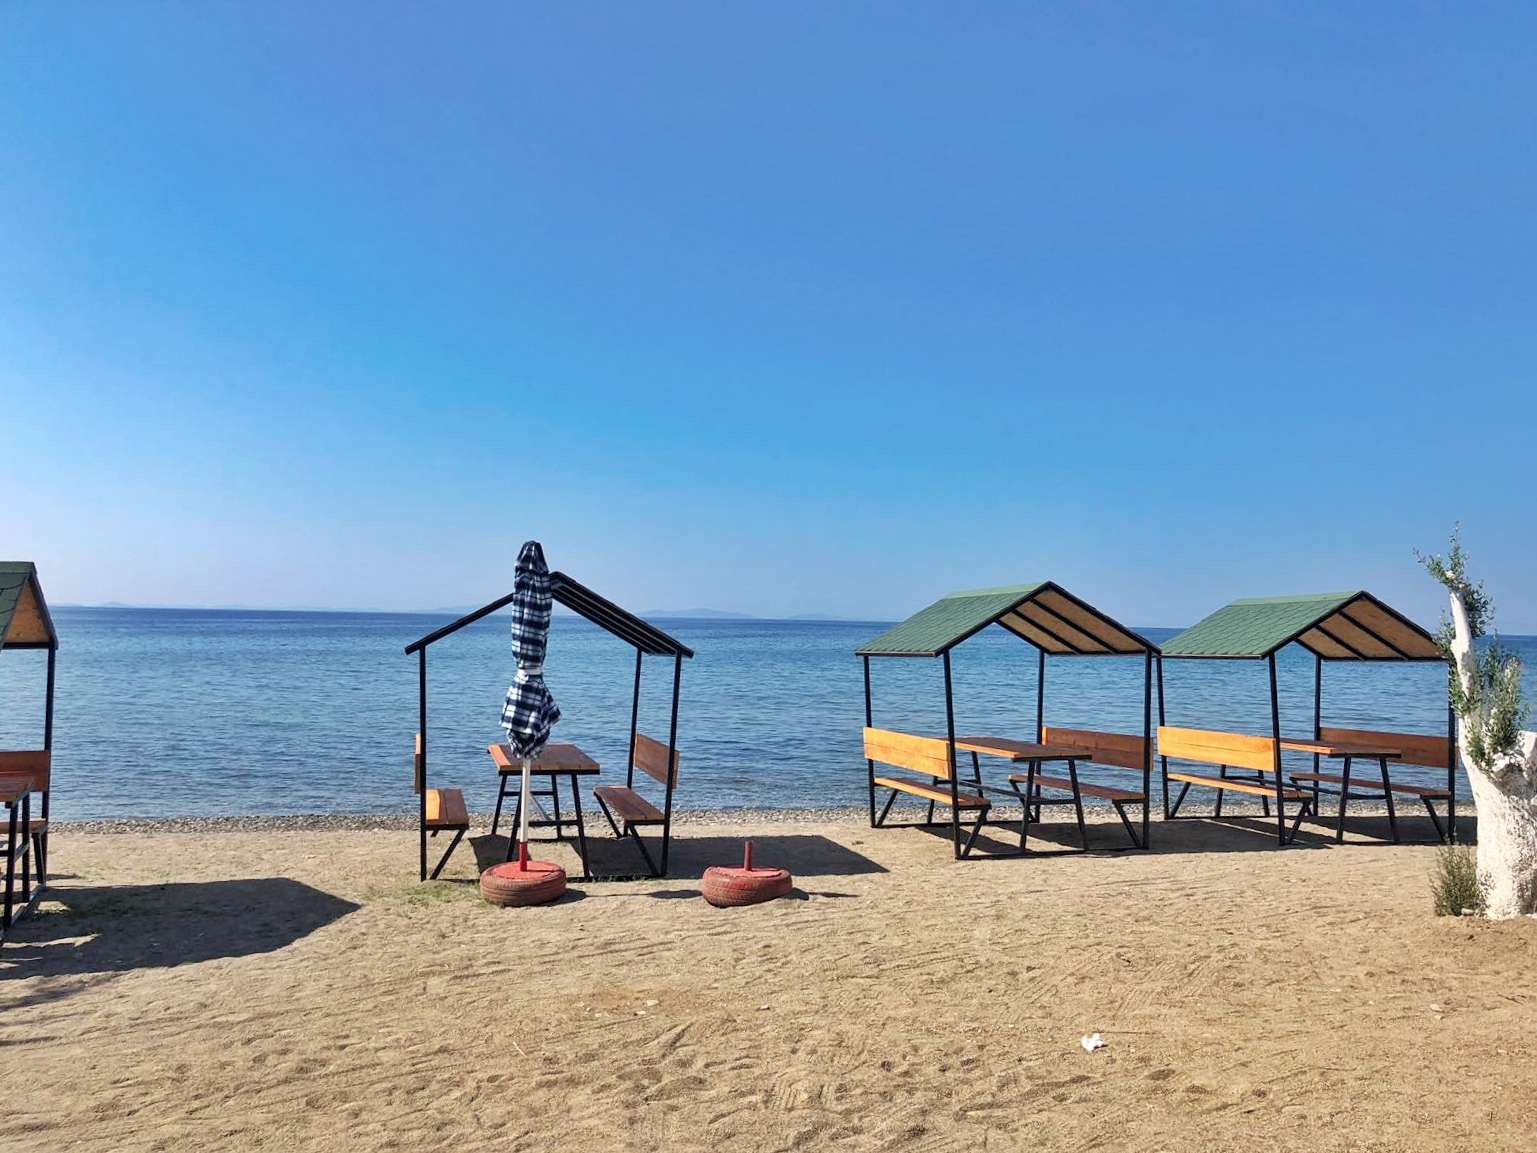 Barbaros Çadır Kamp ve Beach Club